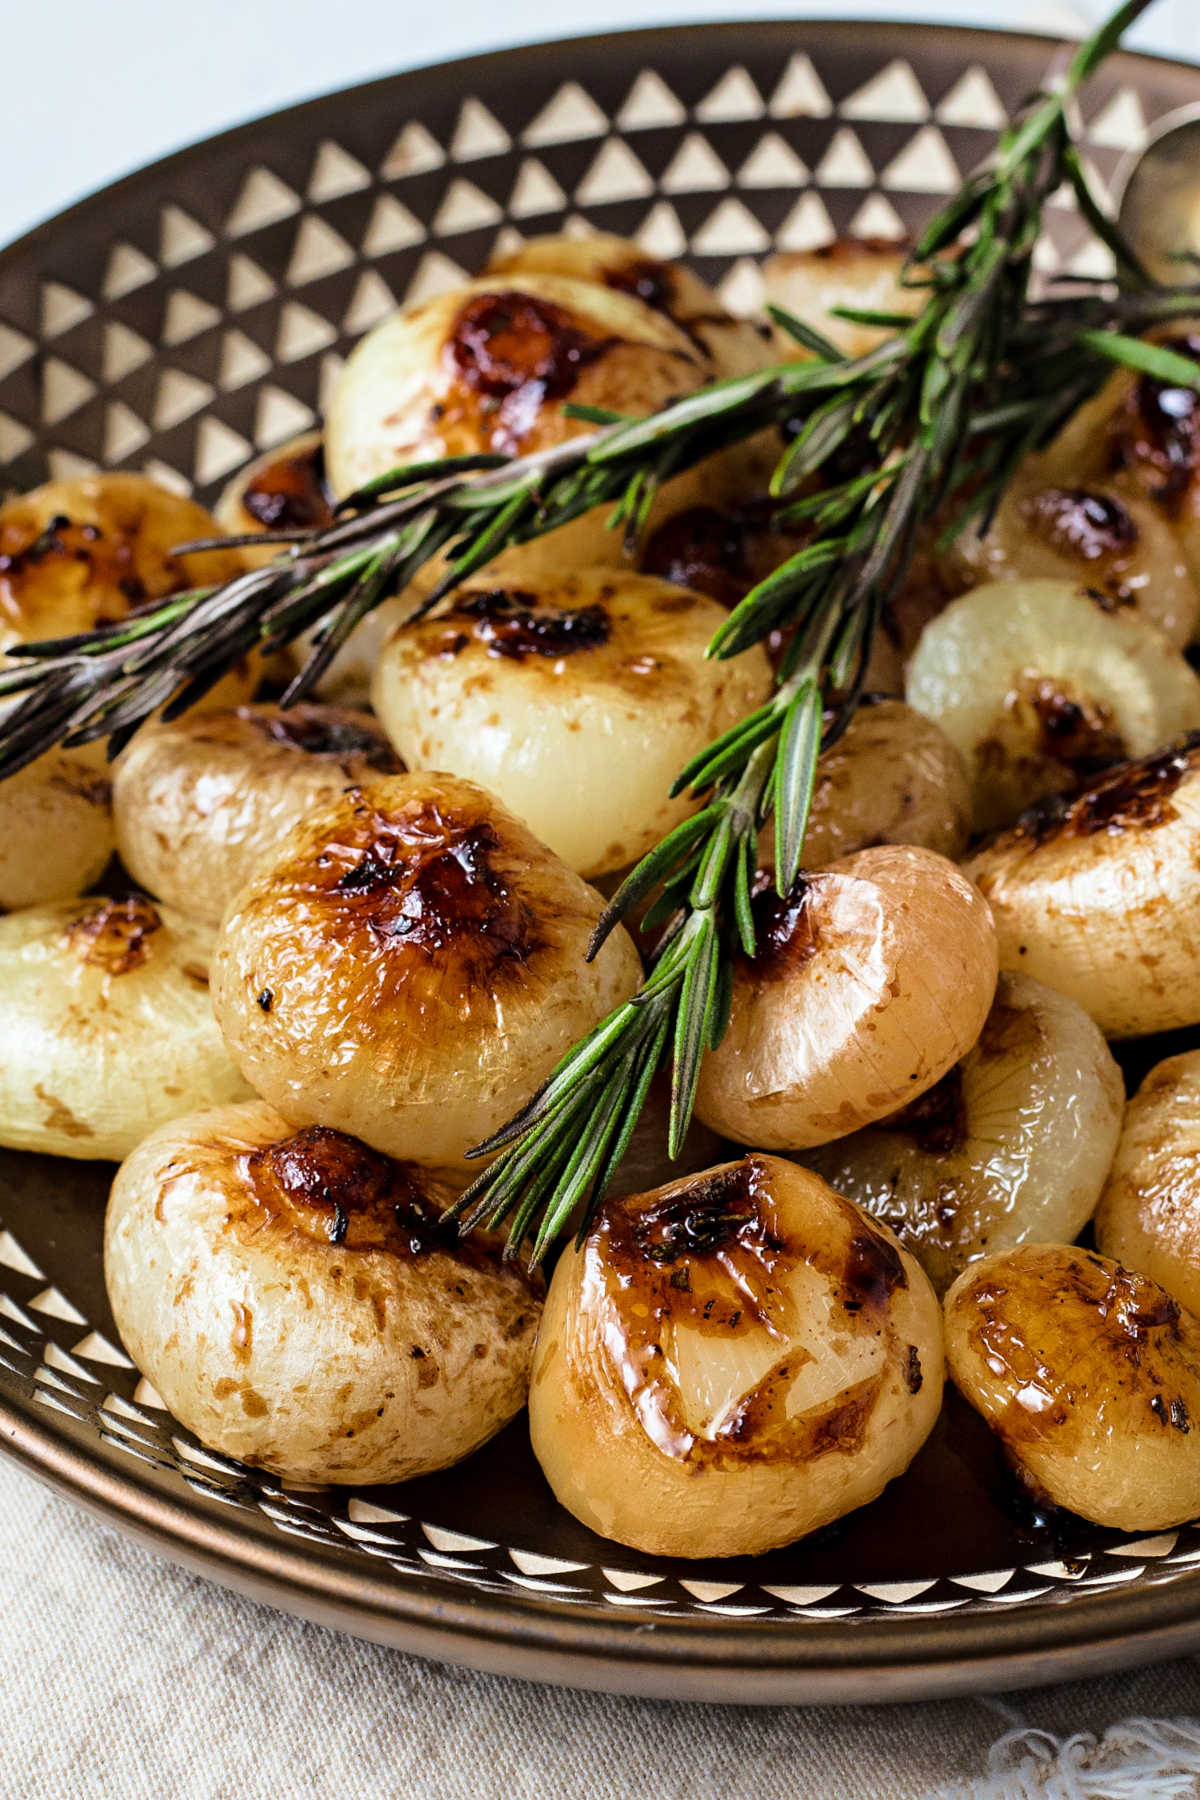 a copper bowl of balsamic glazed cipollini onions garnished with rosemary.